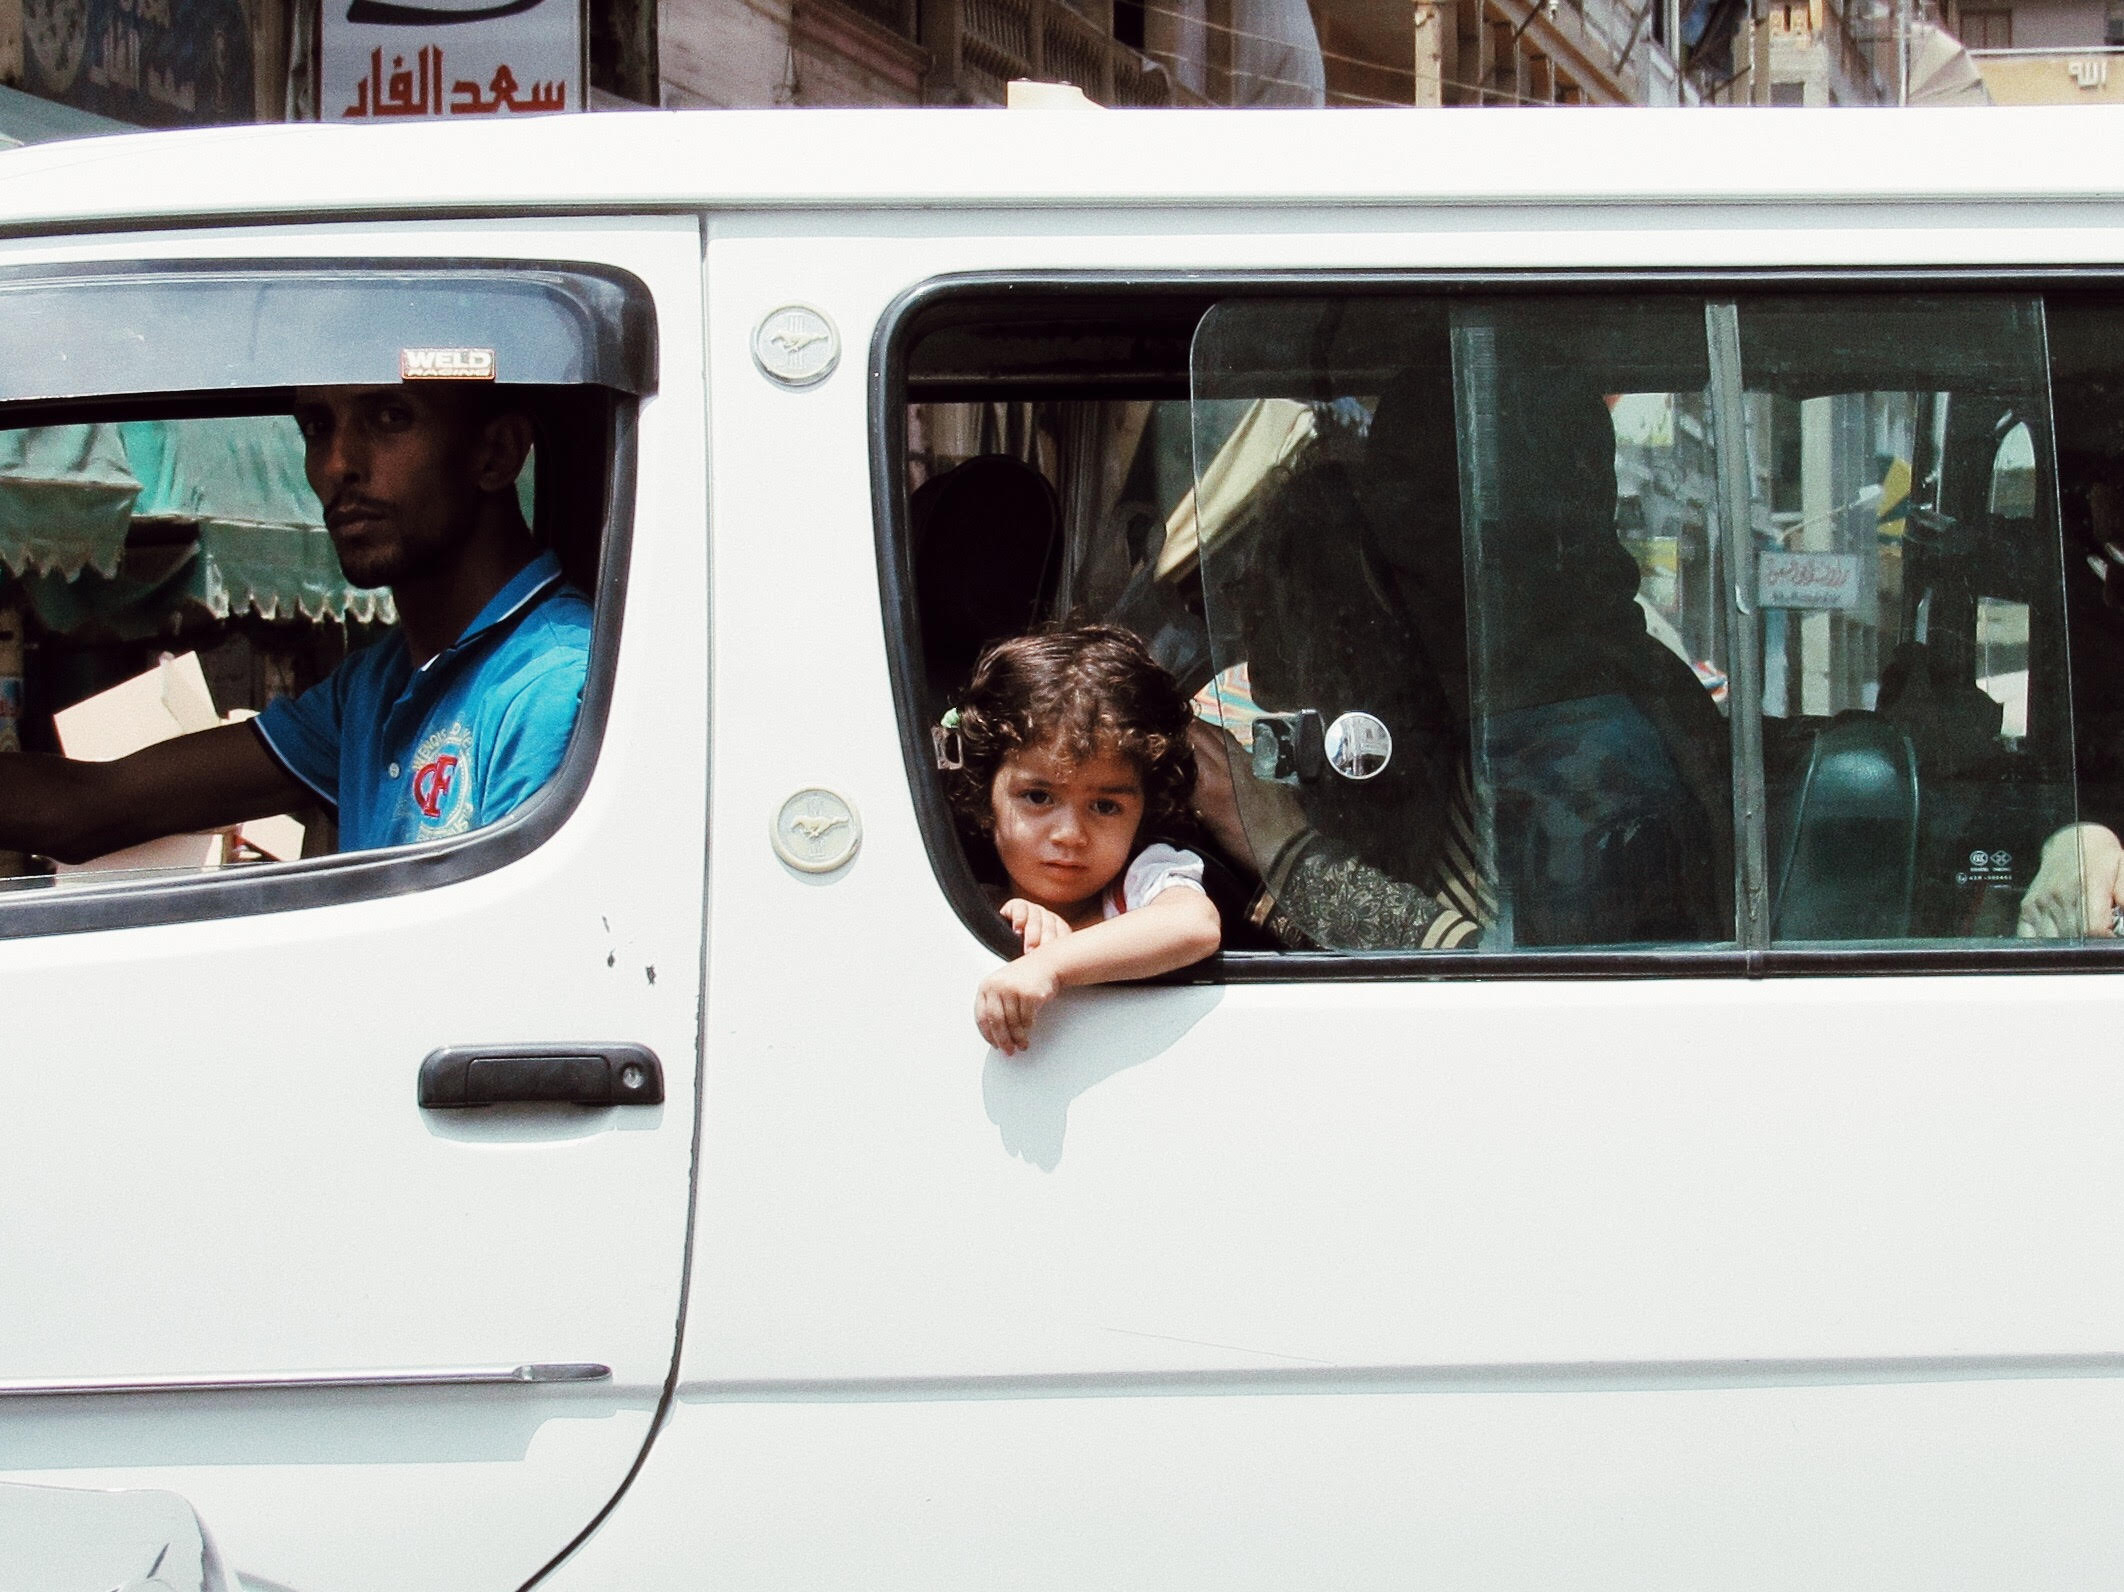 A Girl in Bus |  July 28, 2018 Port Said, Egypt | A young girl, irritated by the Summer heat, reaches out of the crowded white micro-bus for space.